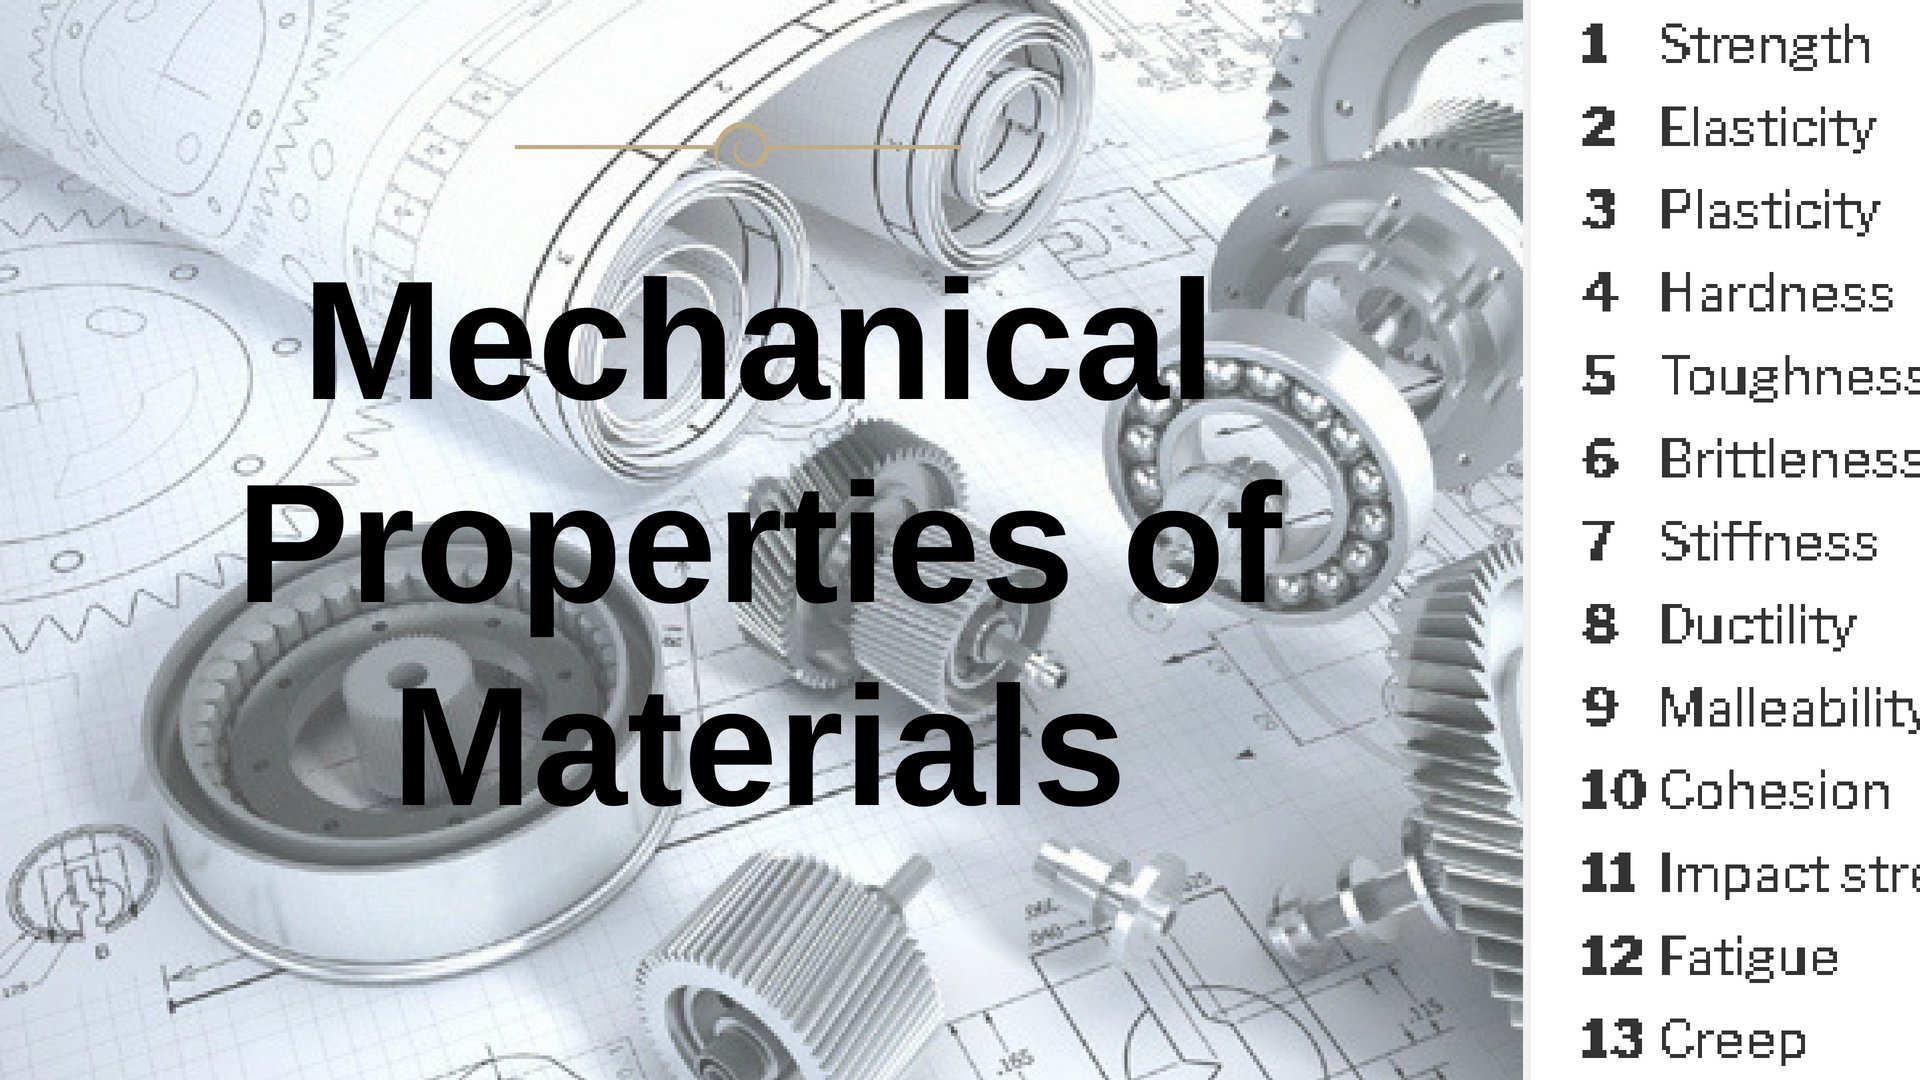 Mechanical Properties of Materials [The Complete List]